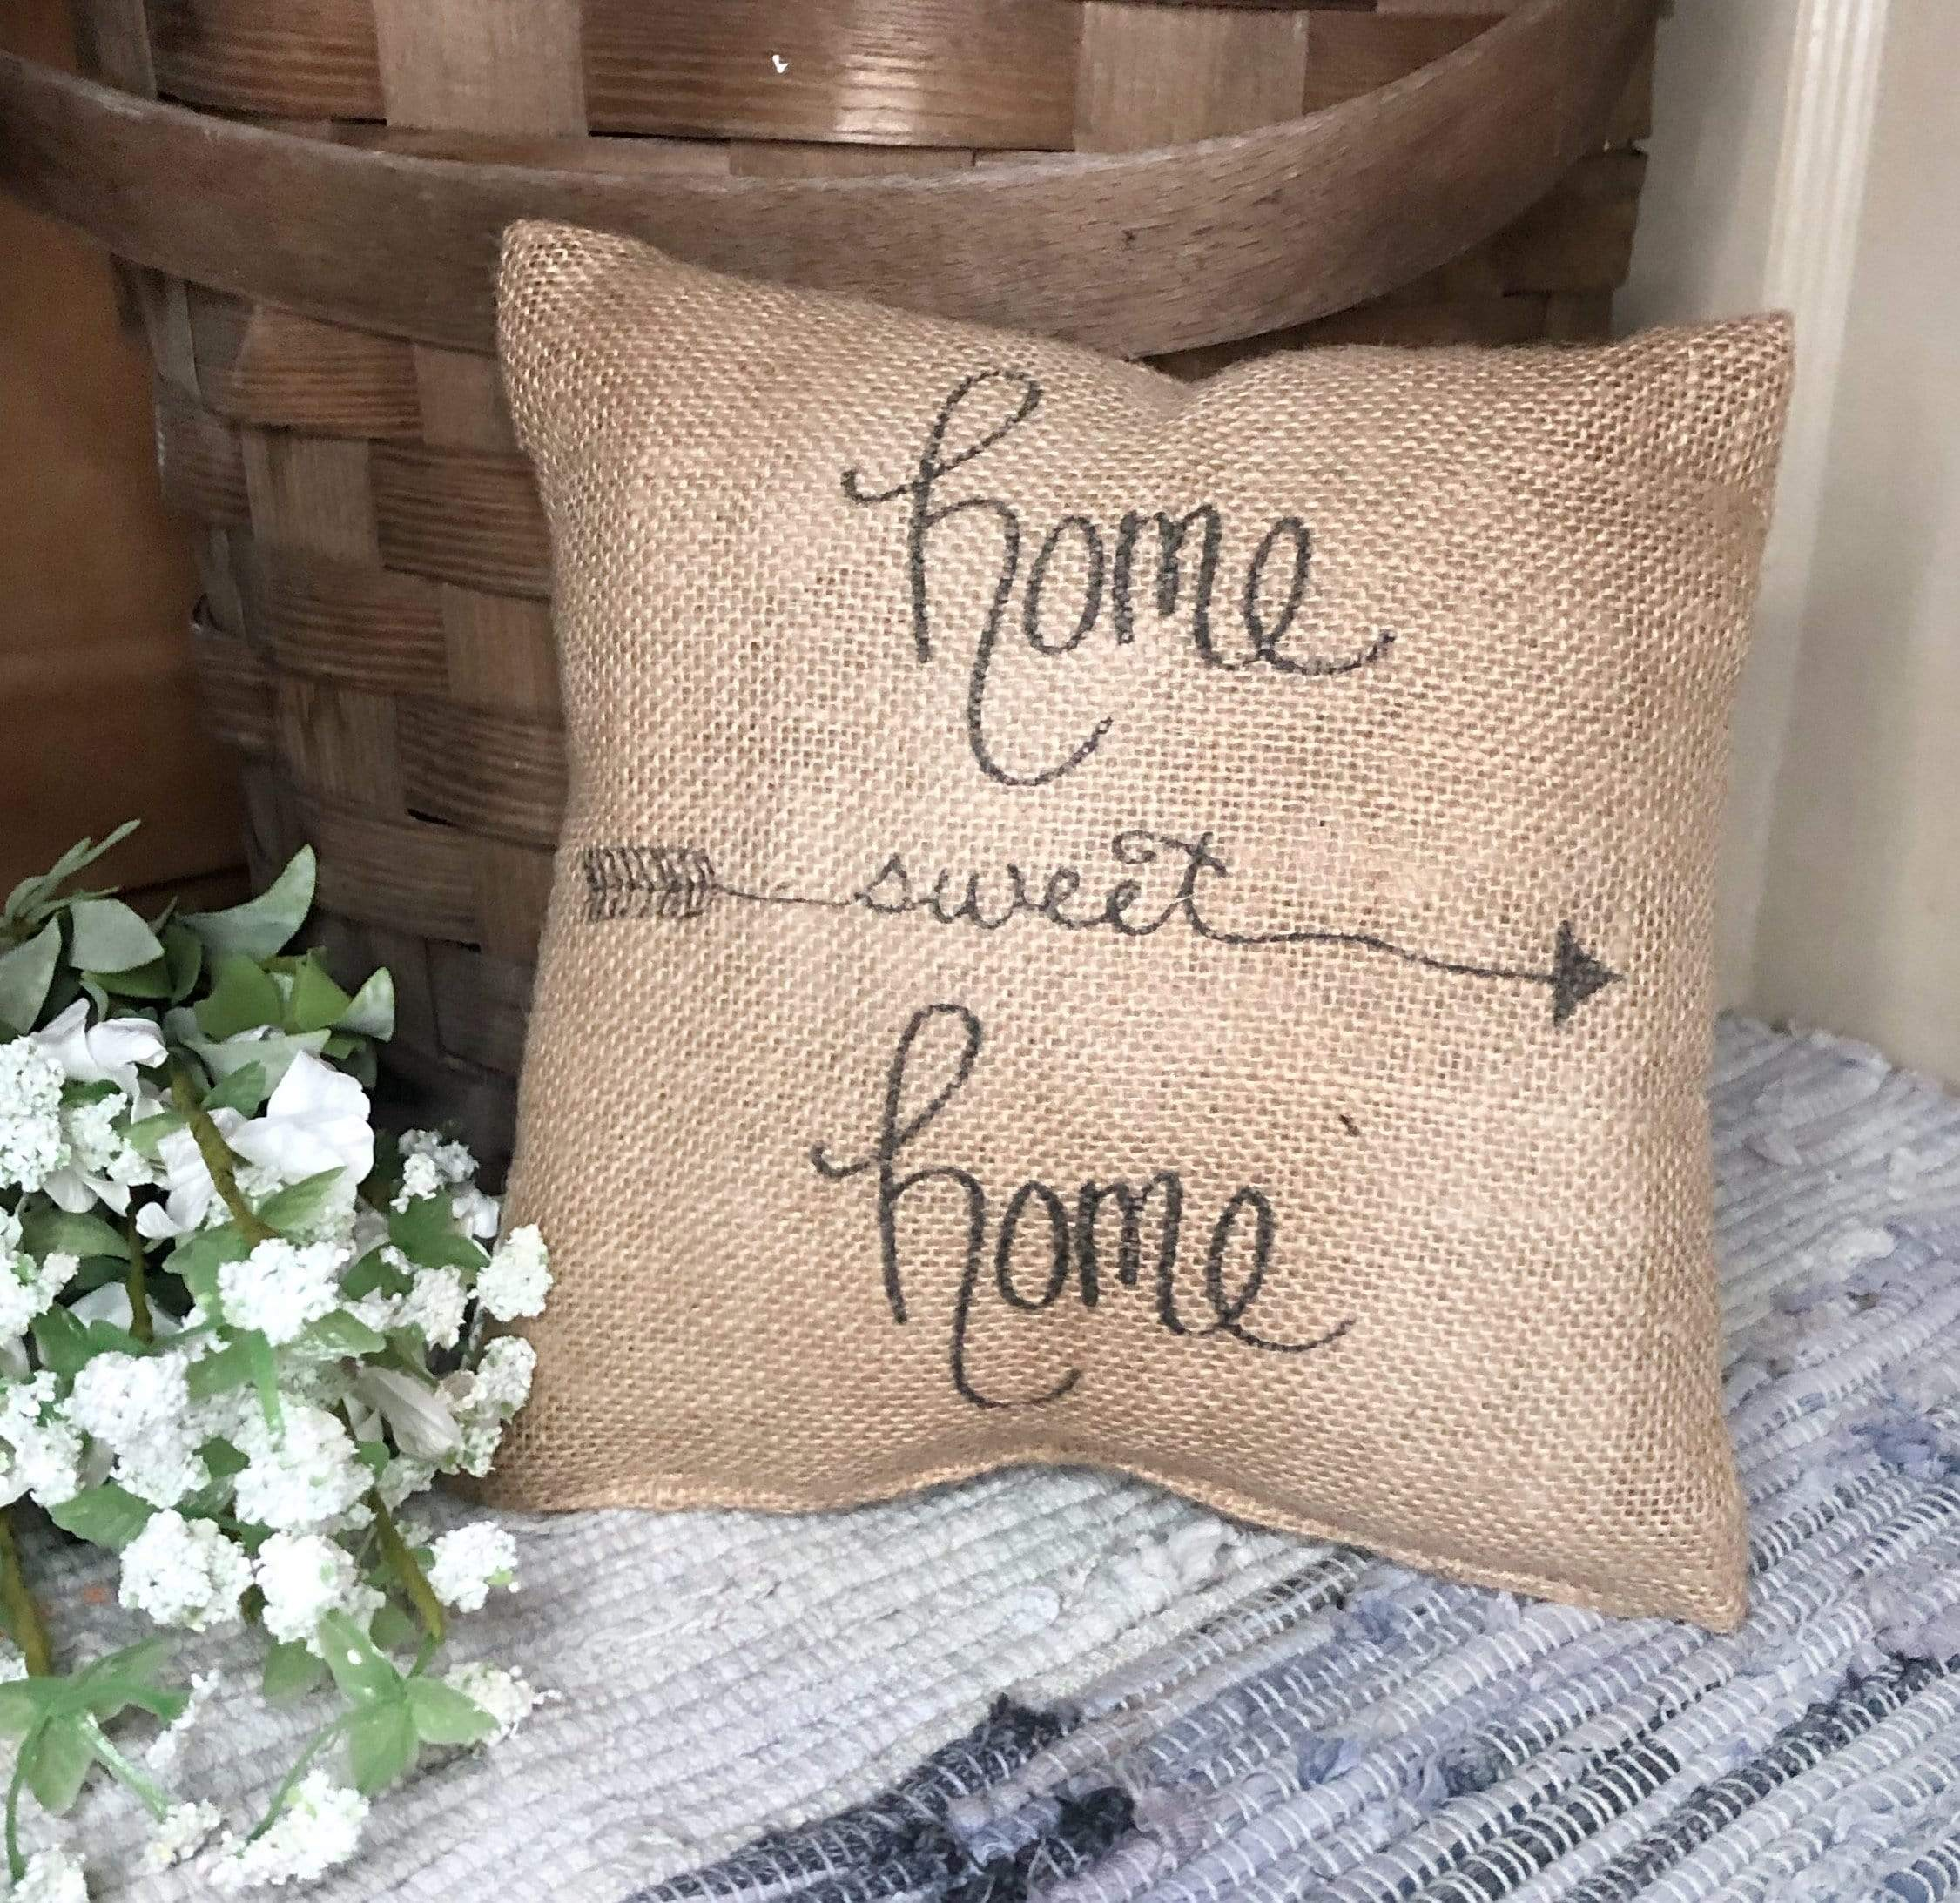 Burlap Pillow - Home Sweet Home